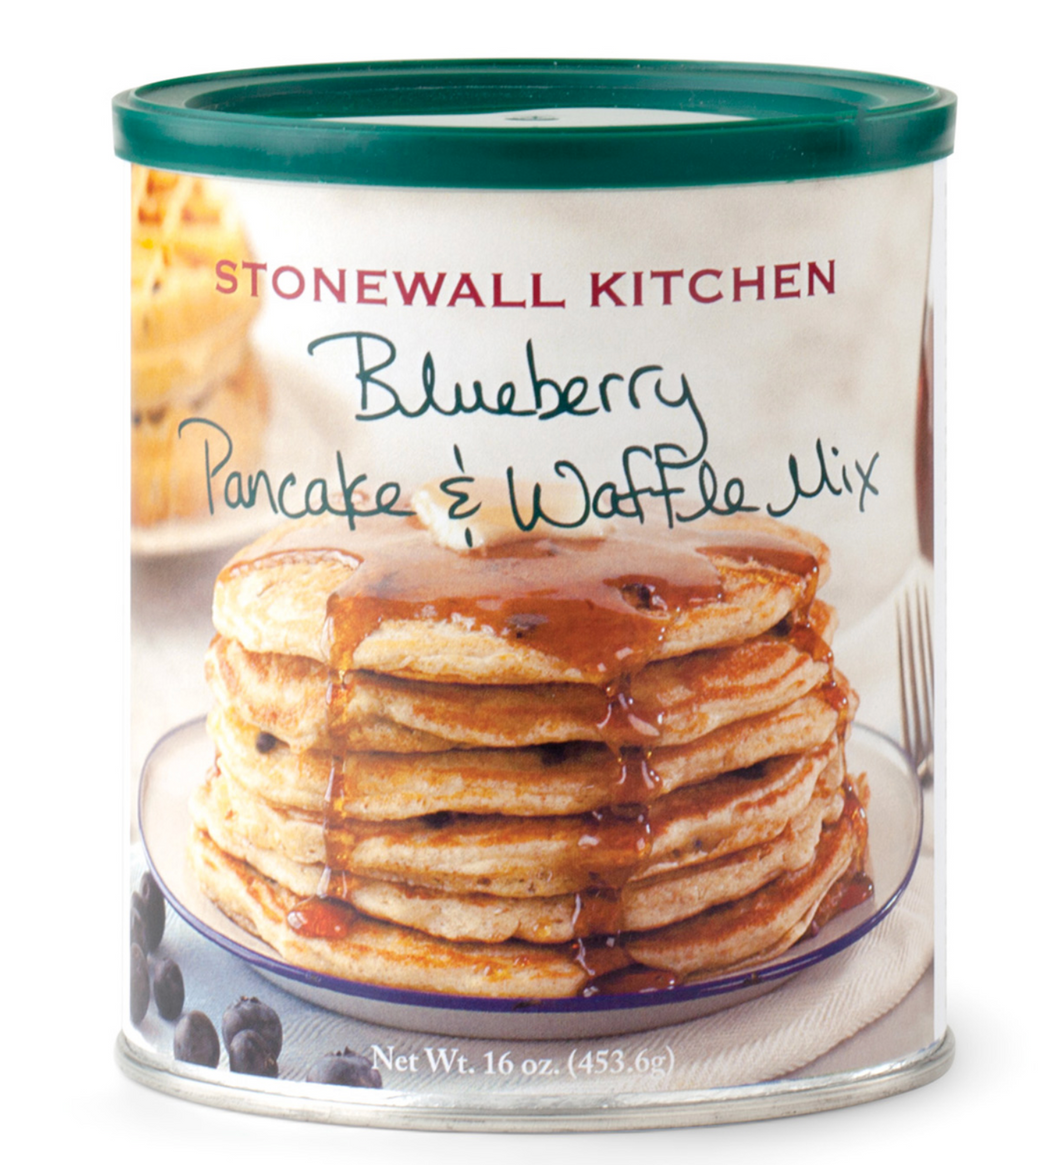 Stonewall Kitchen - Blueberry Pancake and Waffle Mix